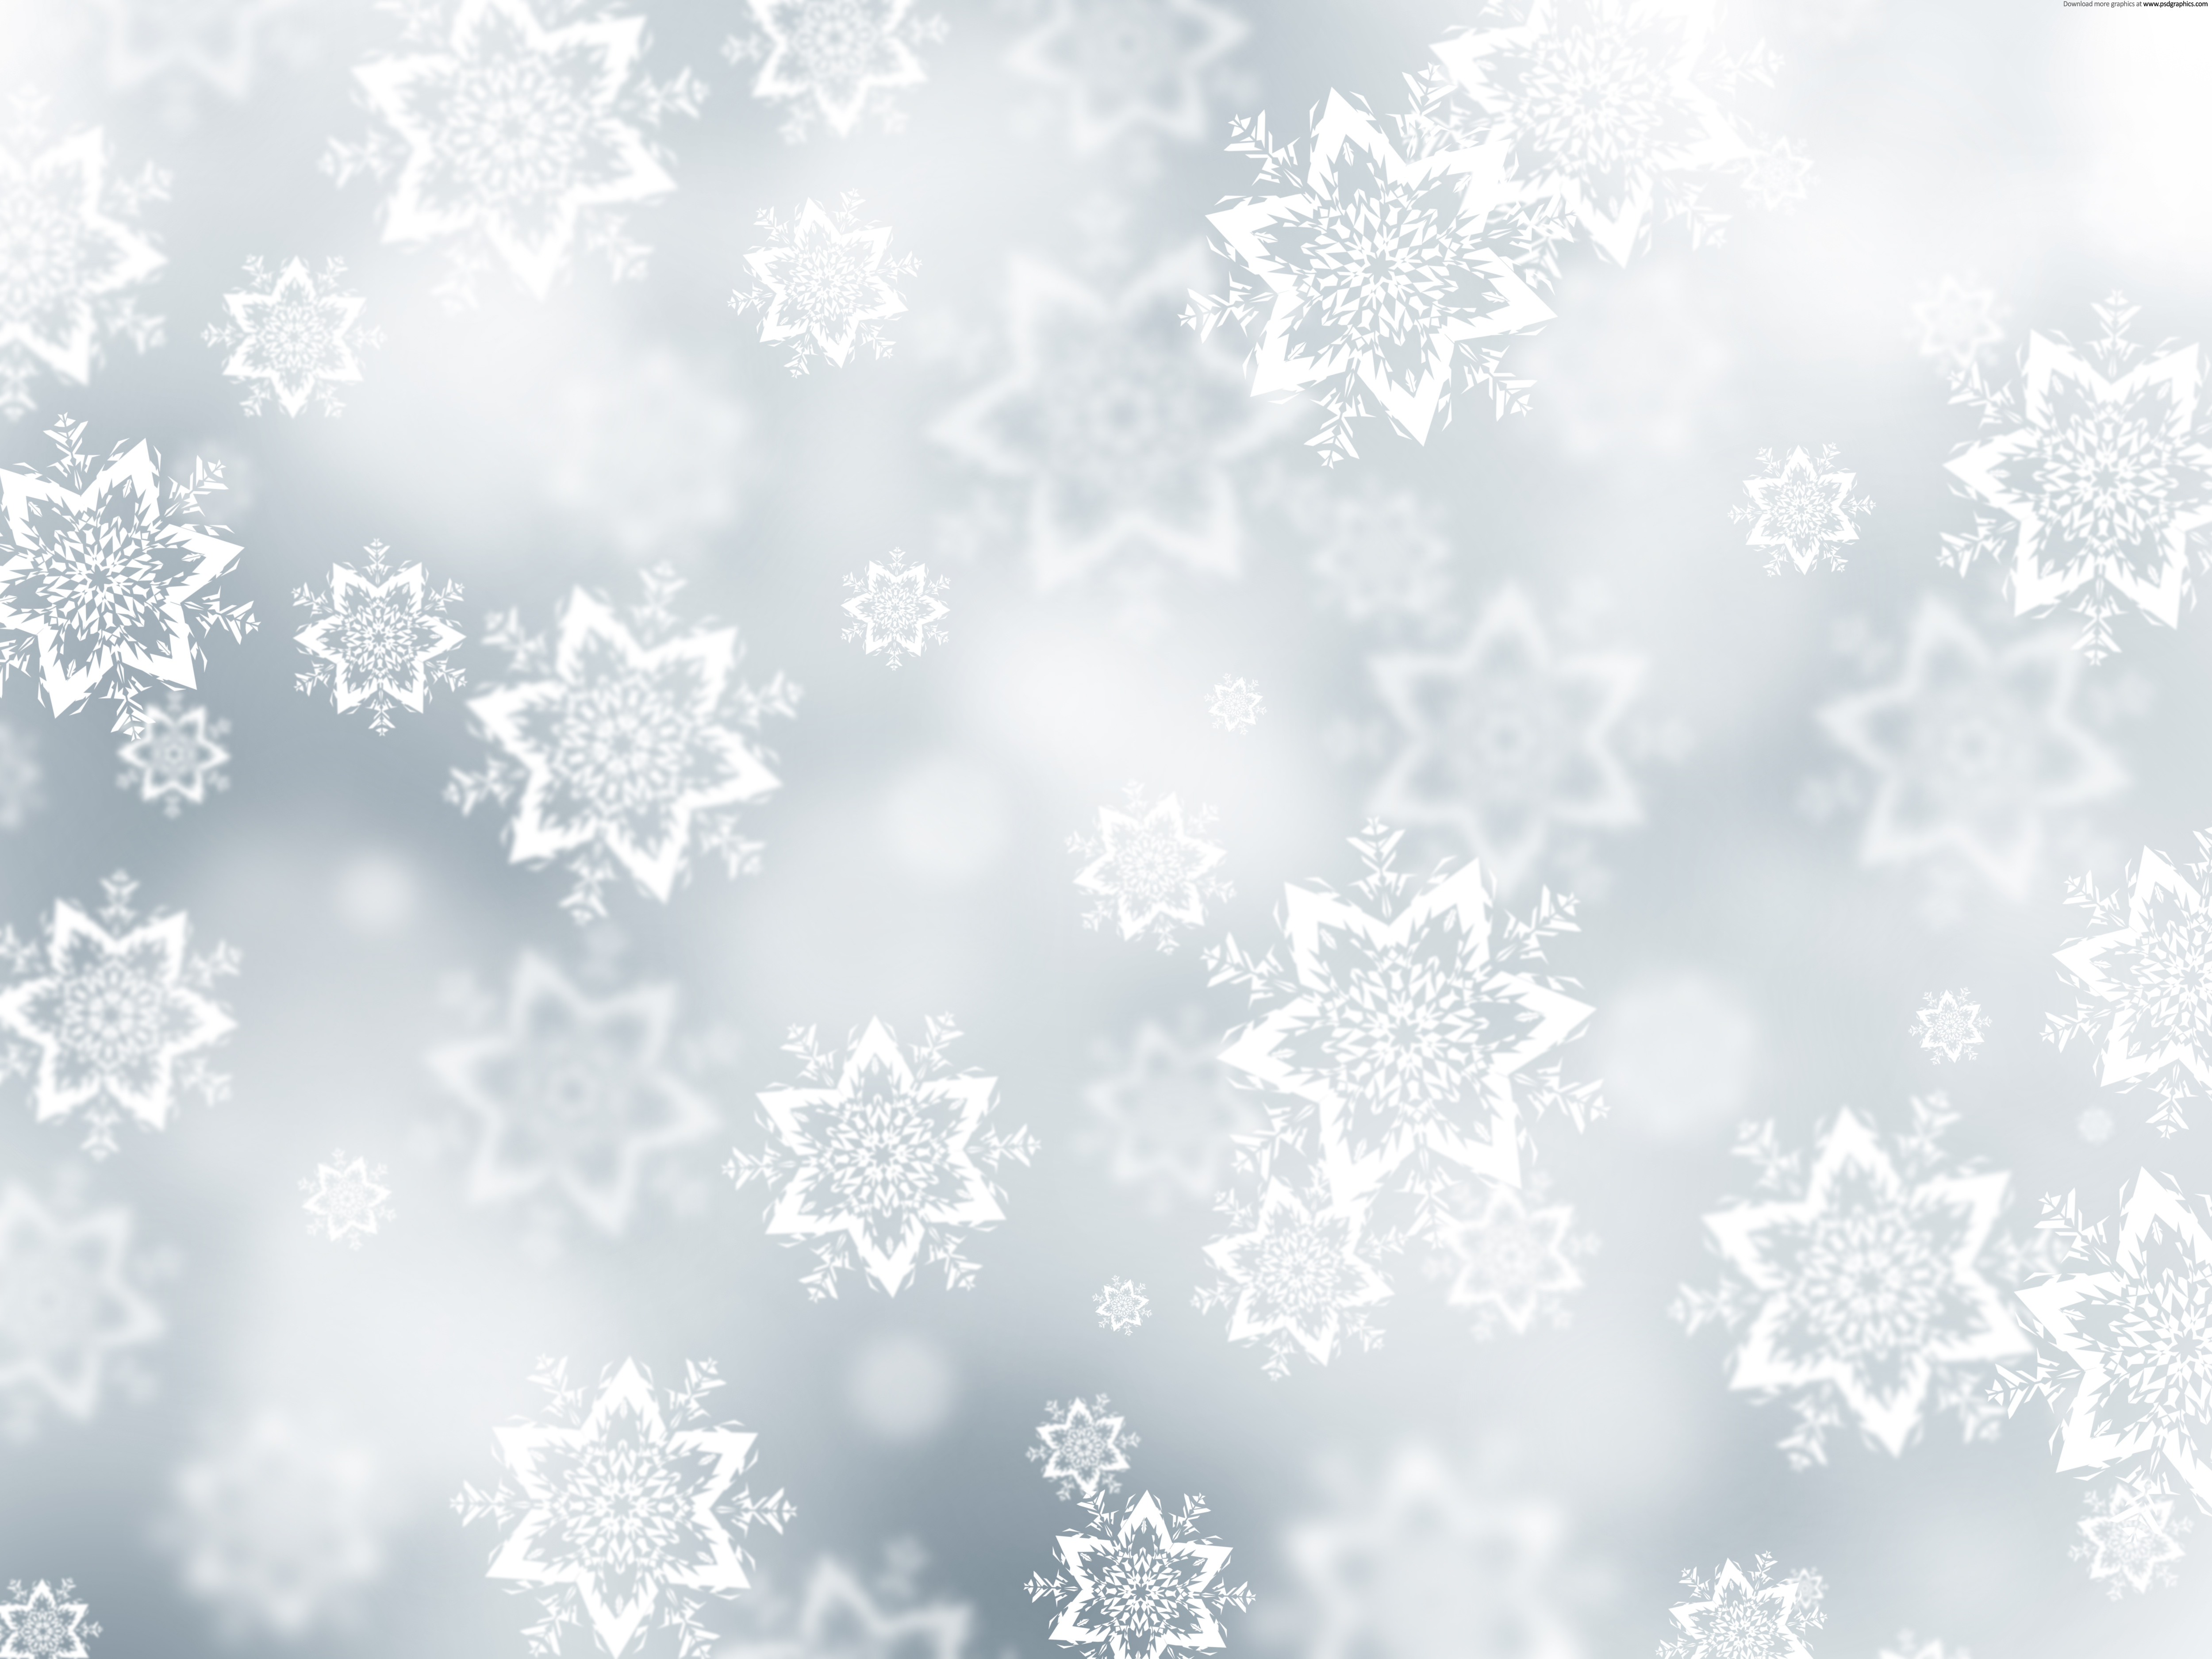 Png Format Images Of Snowing image #24386